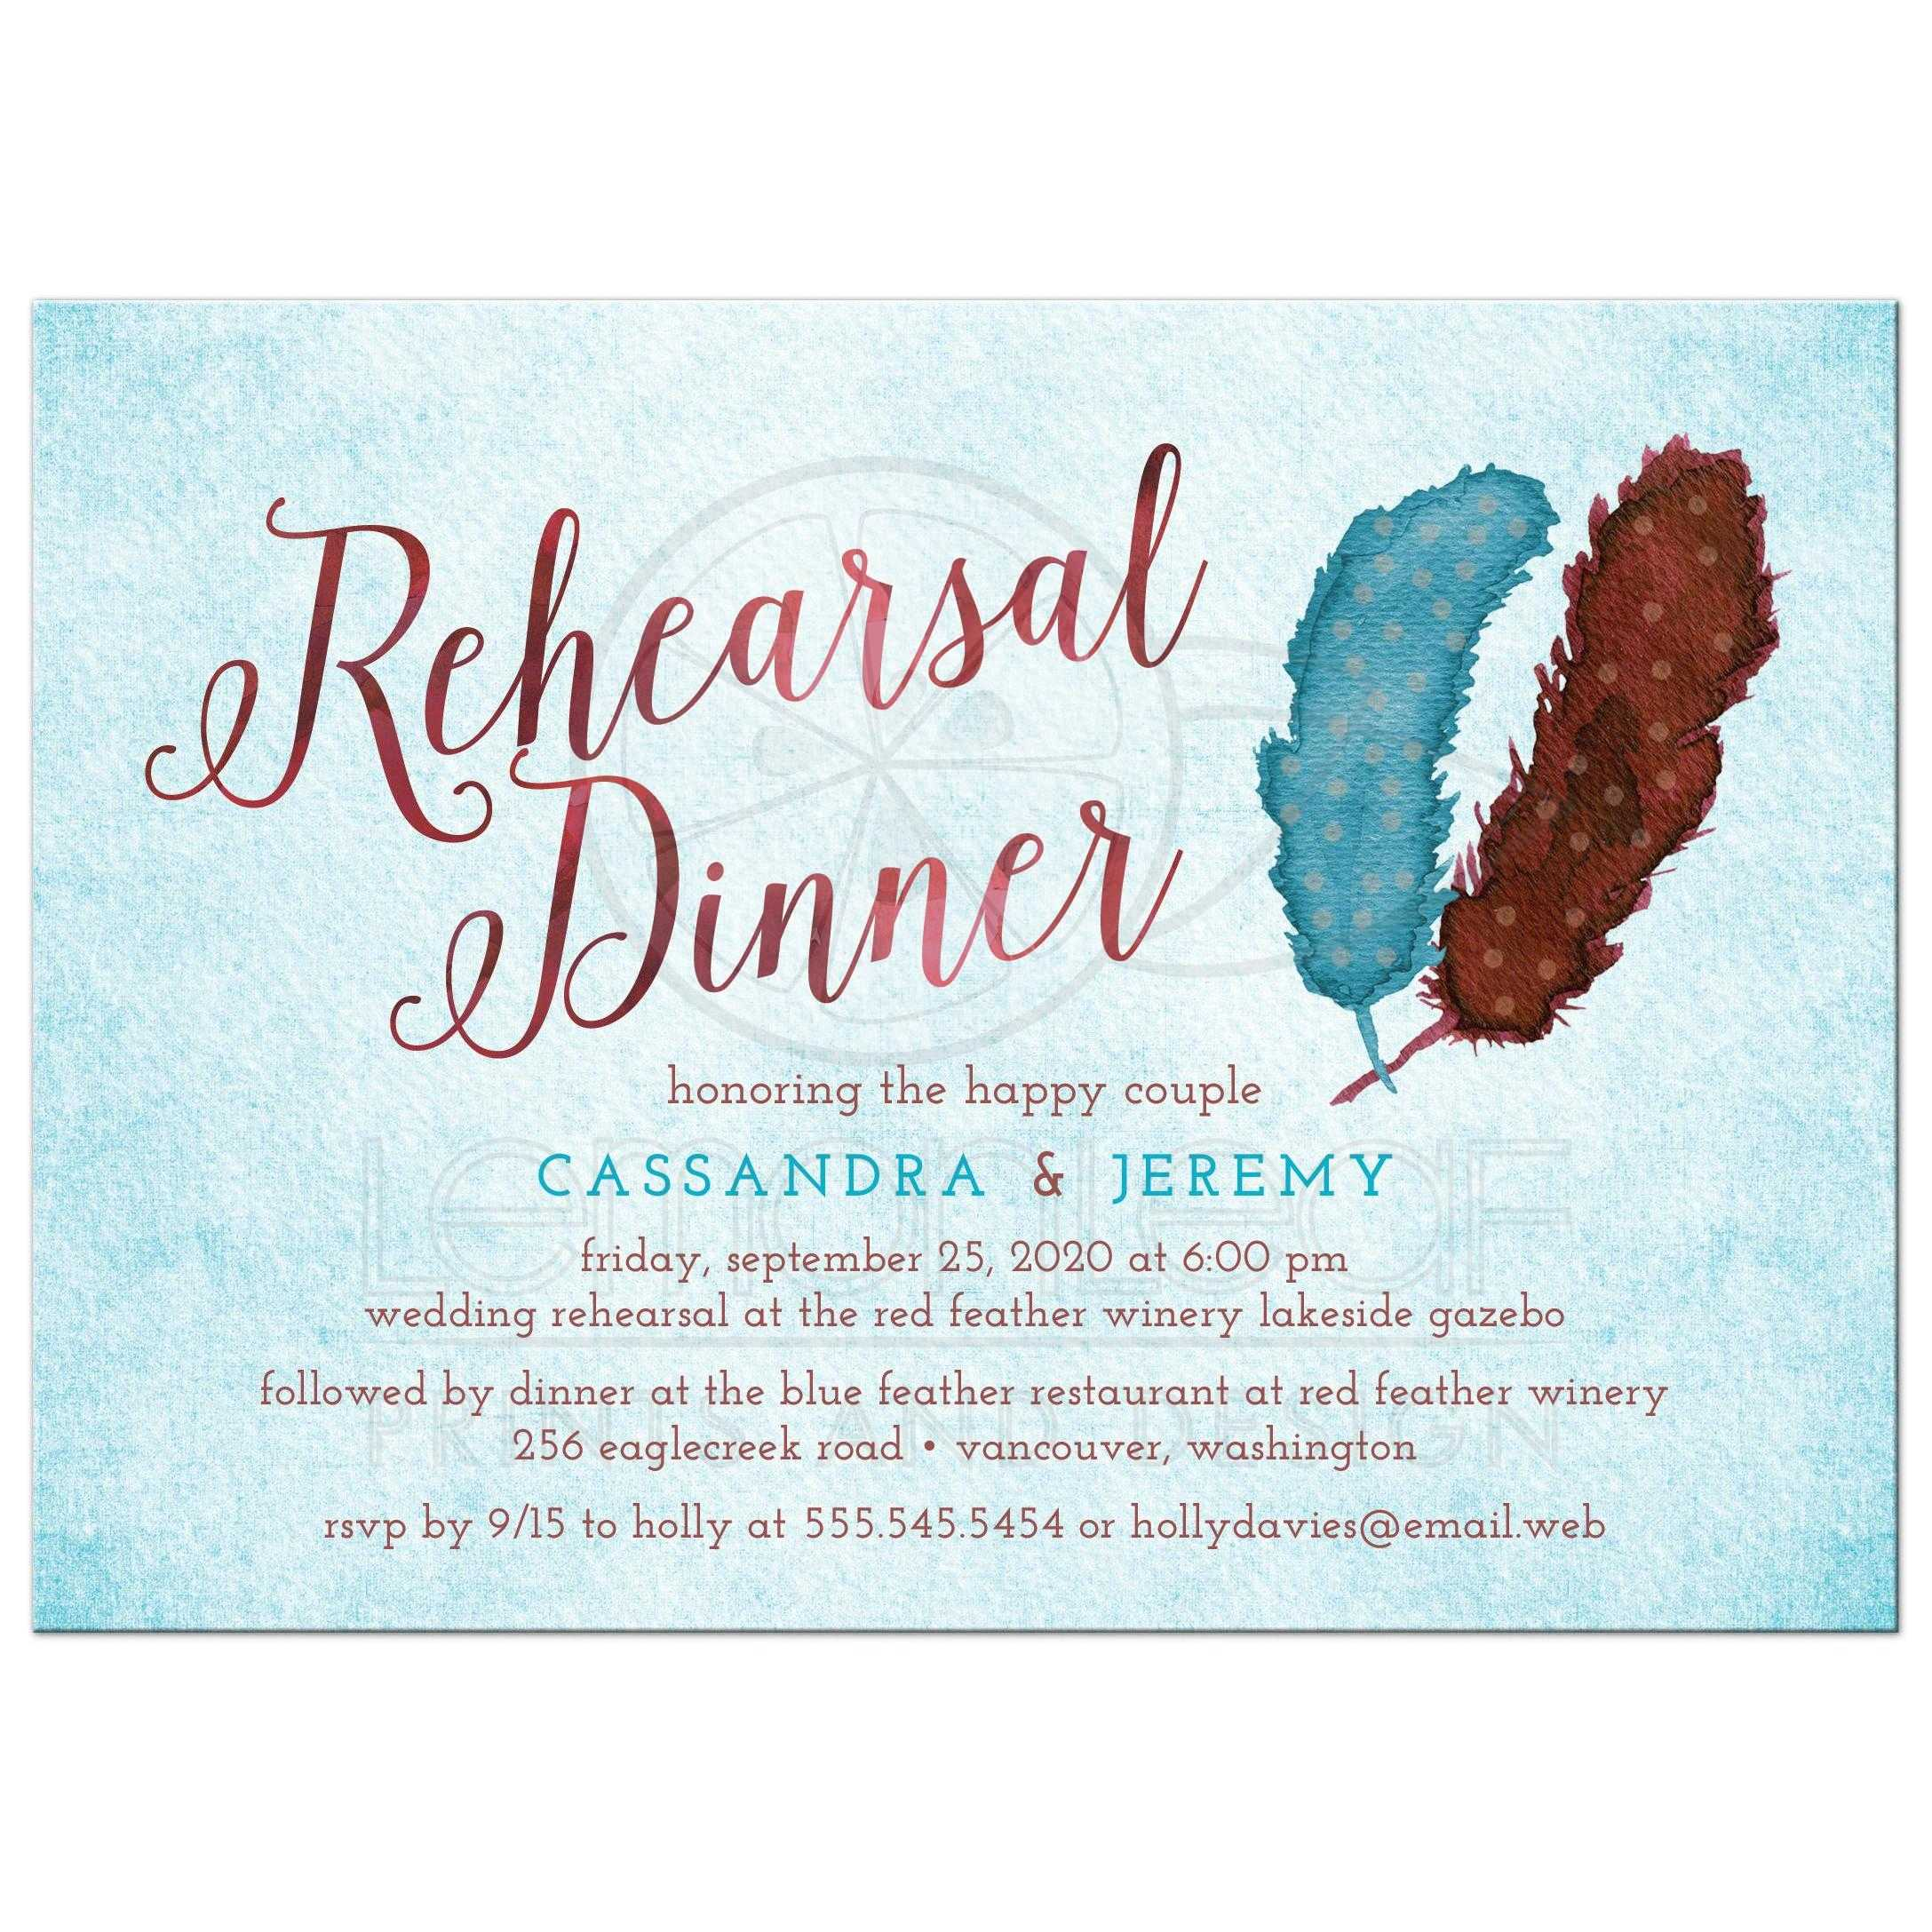 Rehearsal Dinner Invitations - Painted Watercolor Feathers